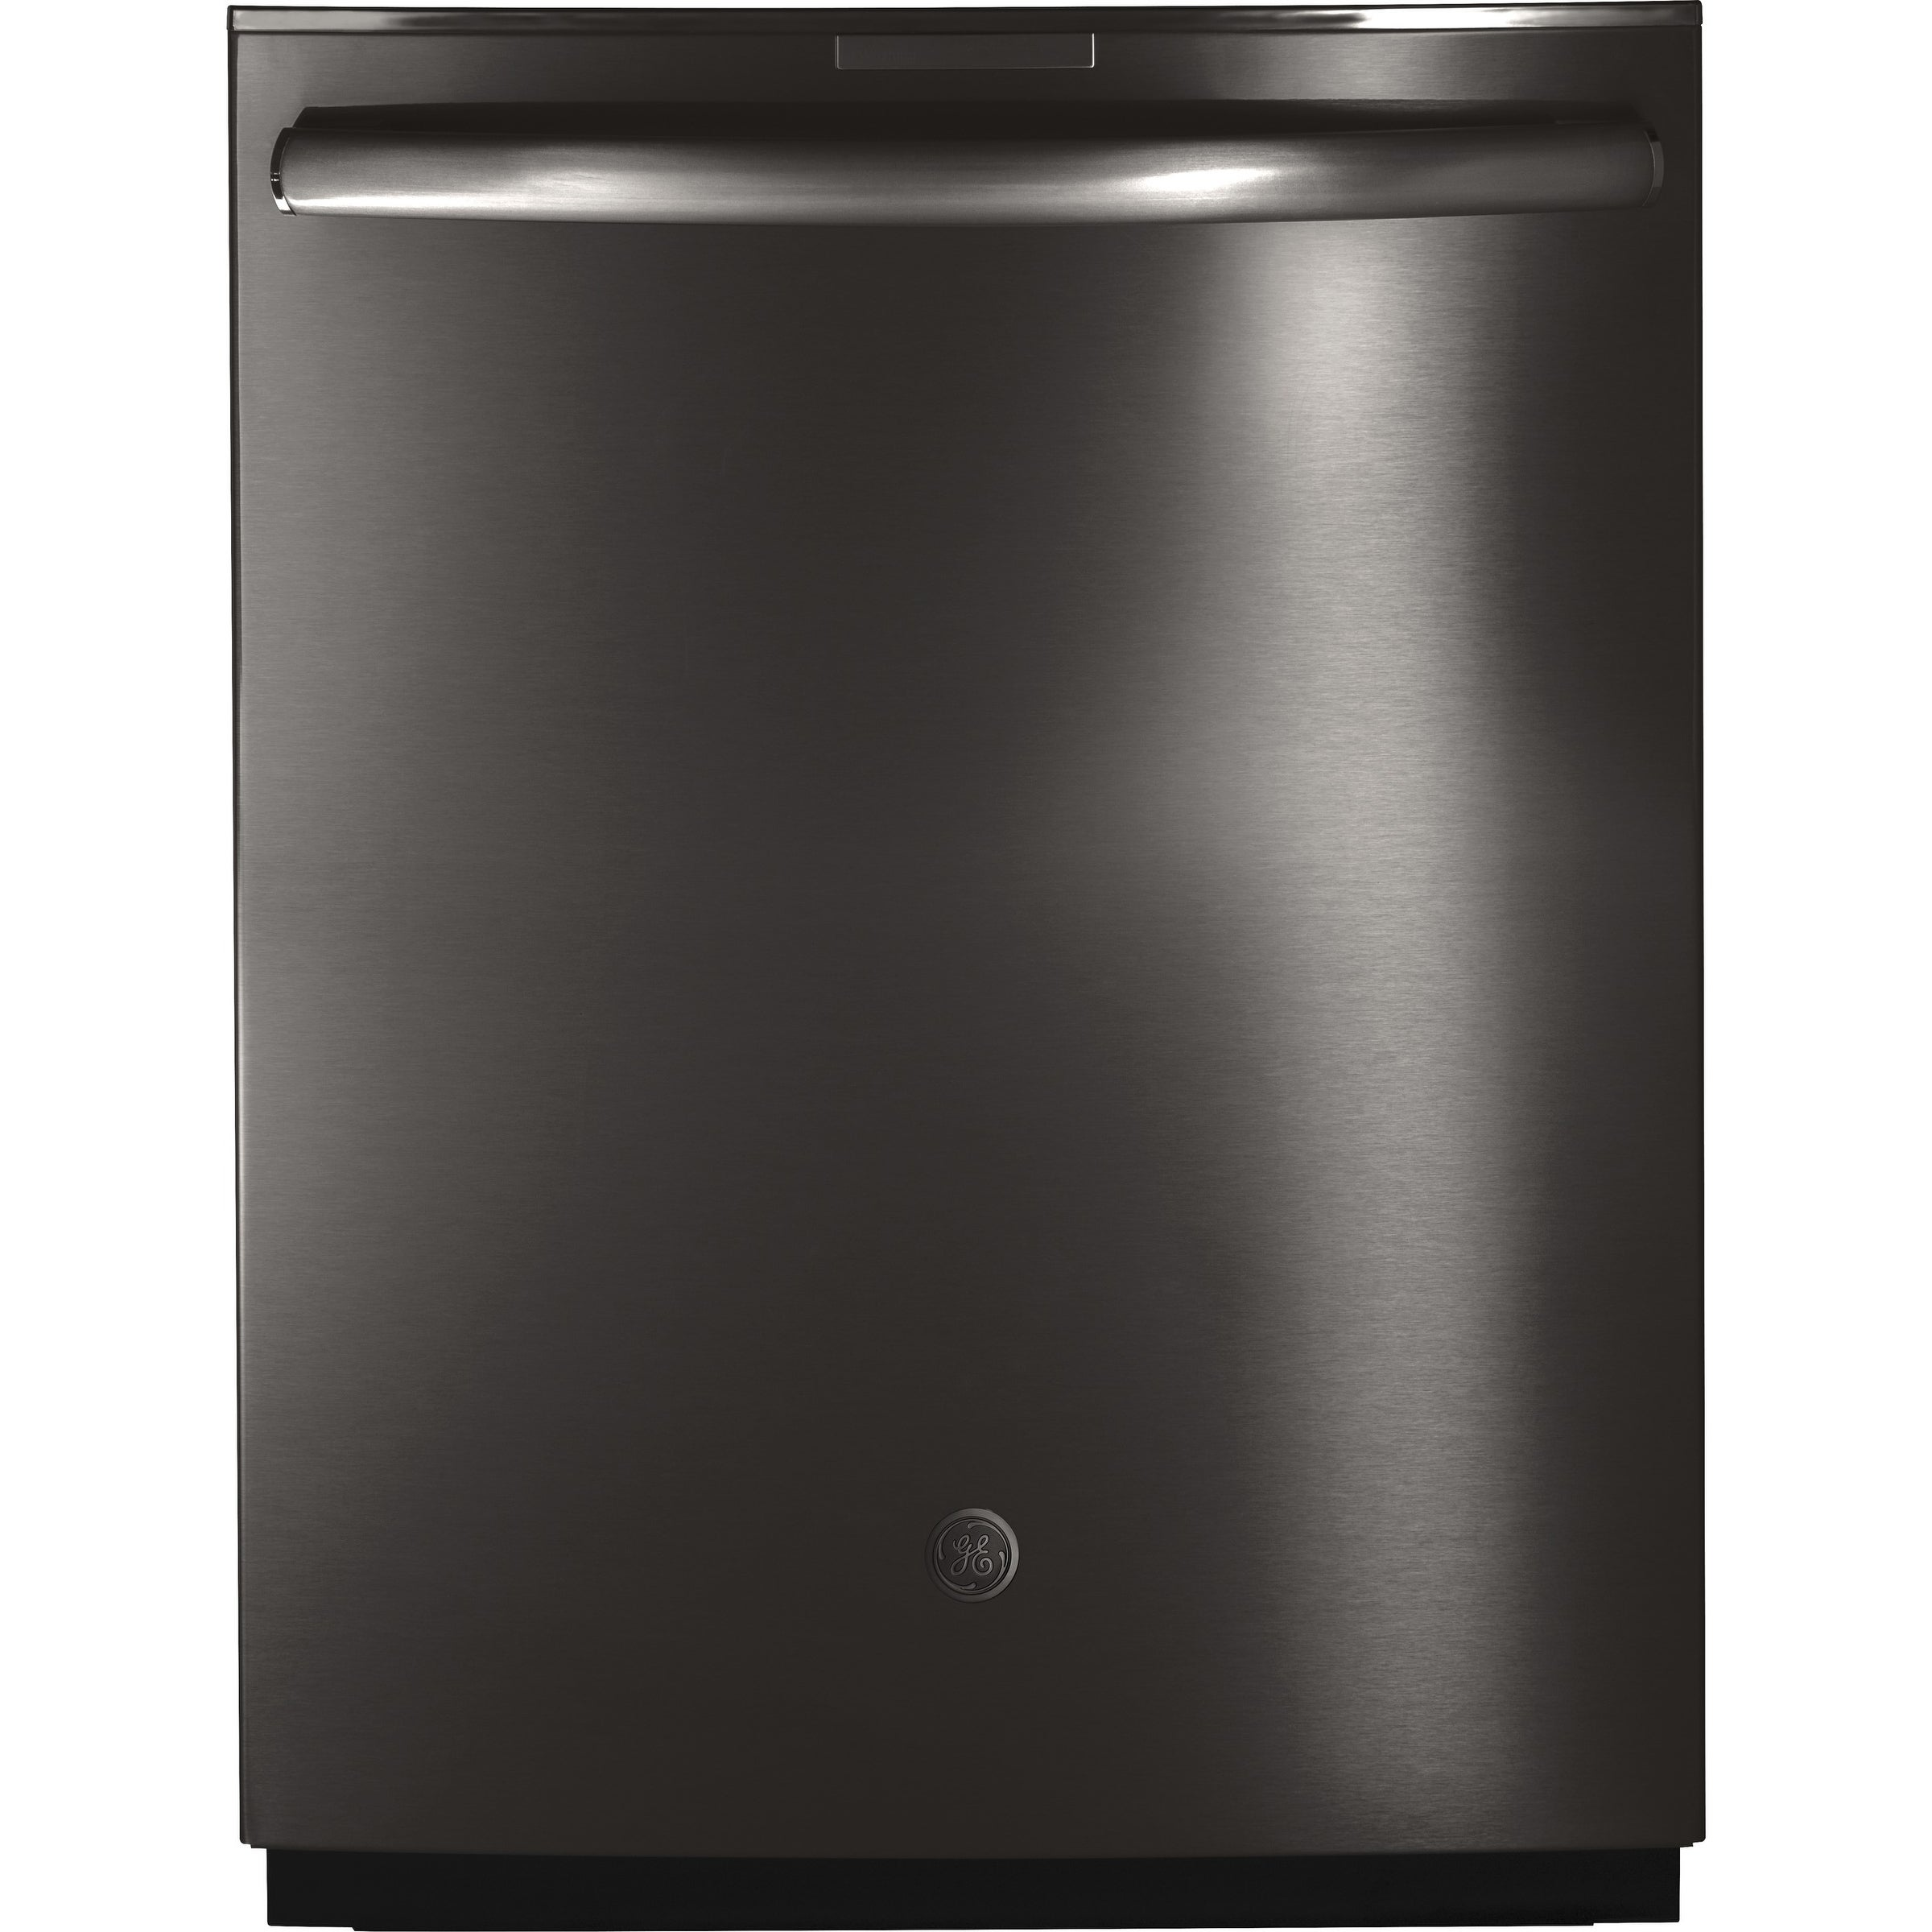 GE Profile Stainless Steel Interior Dishwasher with Hidden Controls Black - Top Control - 24 in.